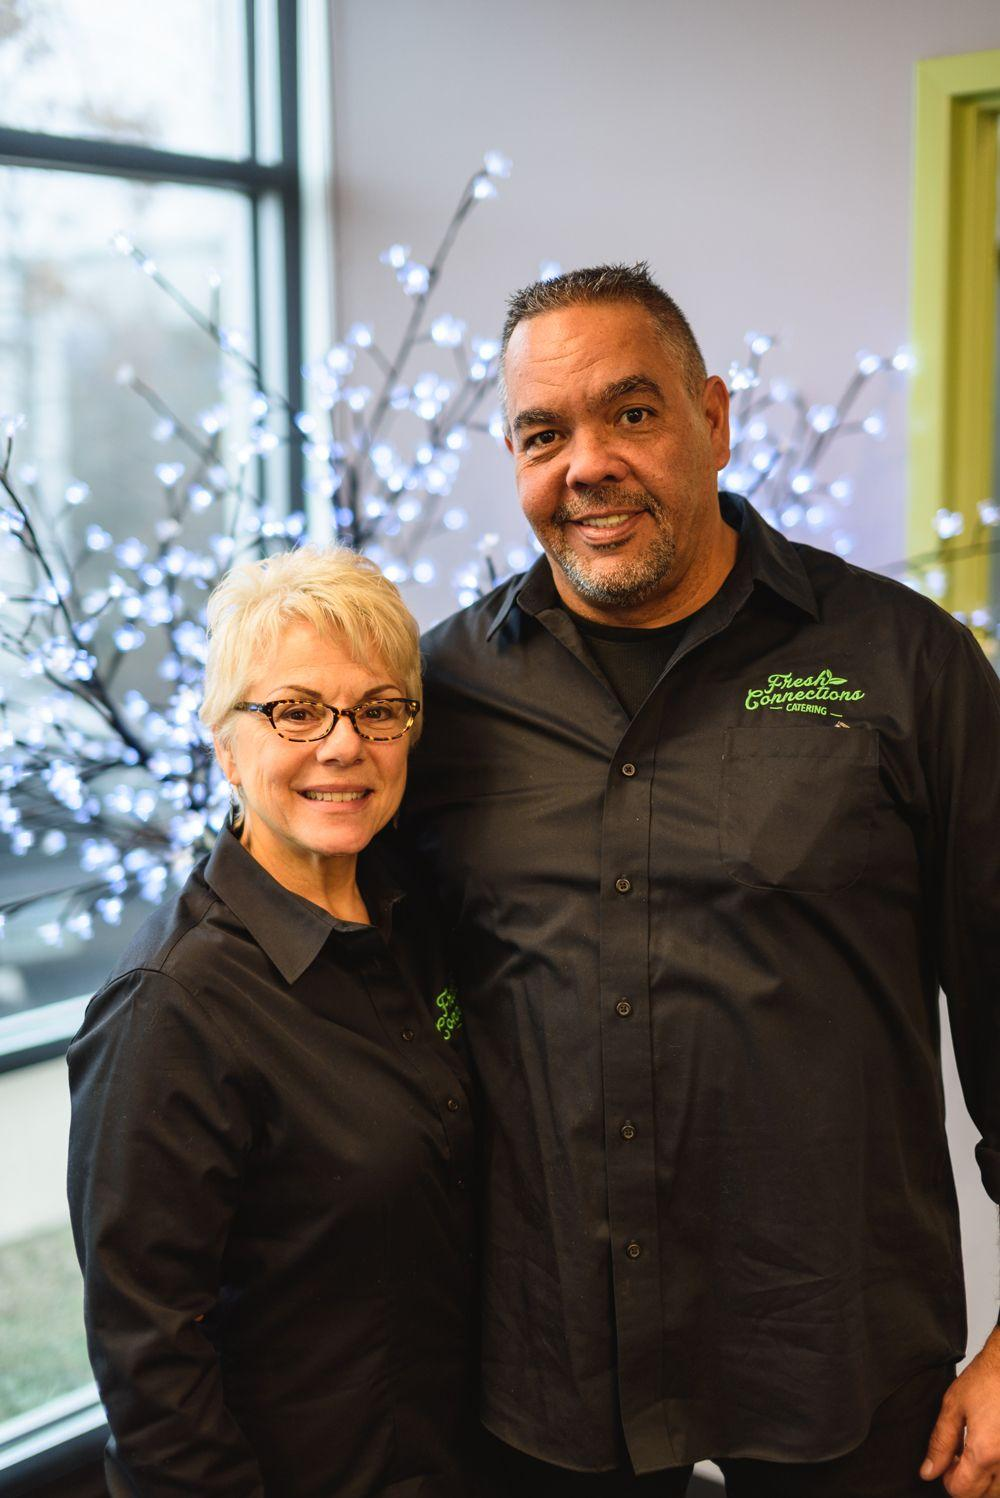 The owners of Fresh Connections Catering providing corporate catering services to Chantilly VA